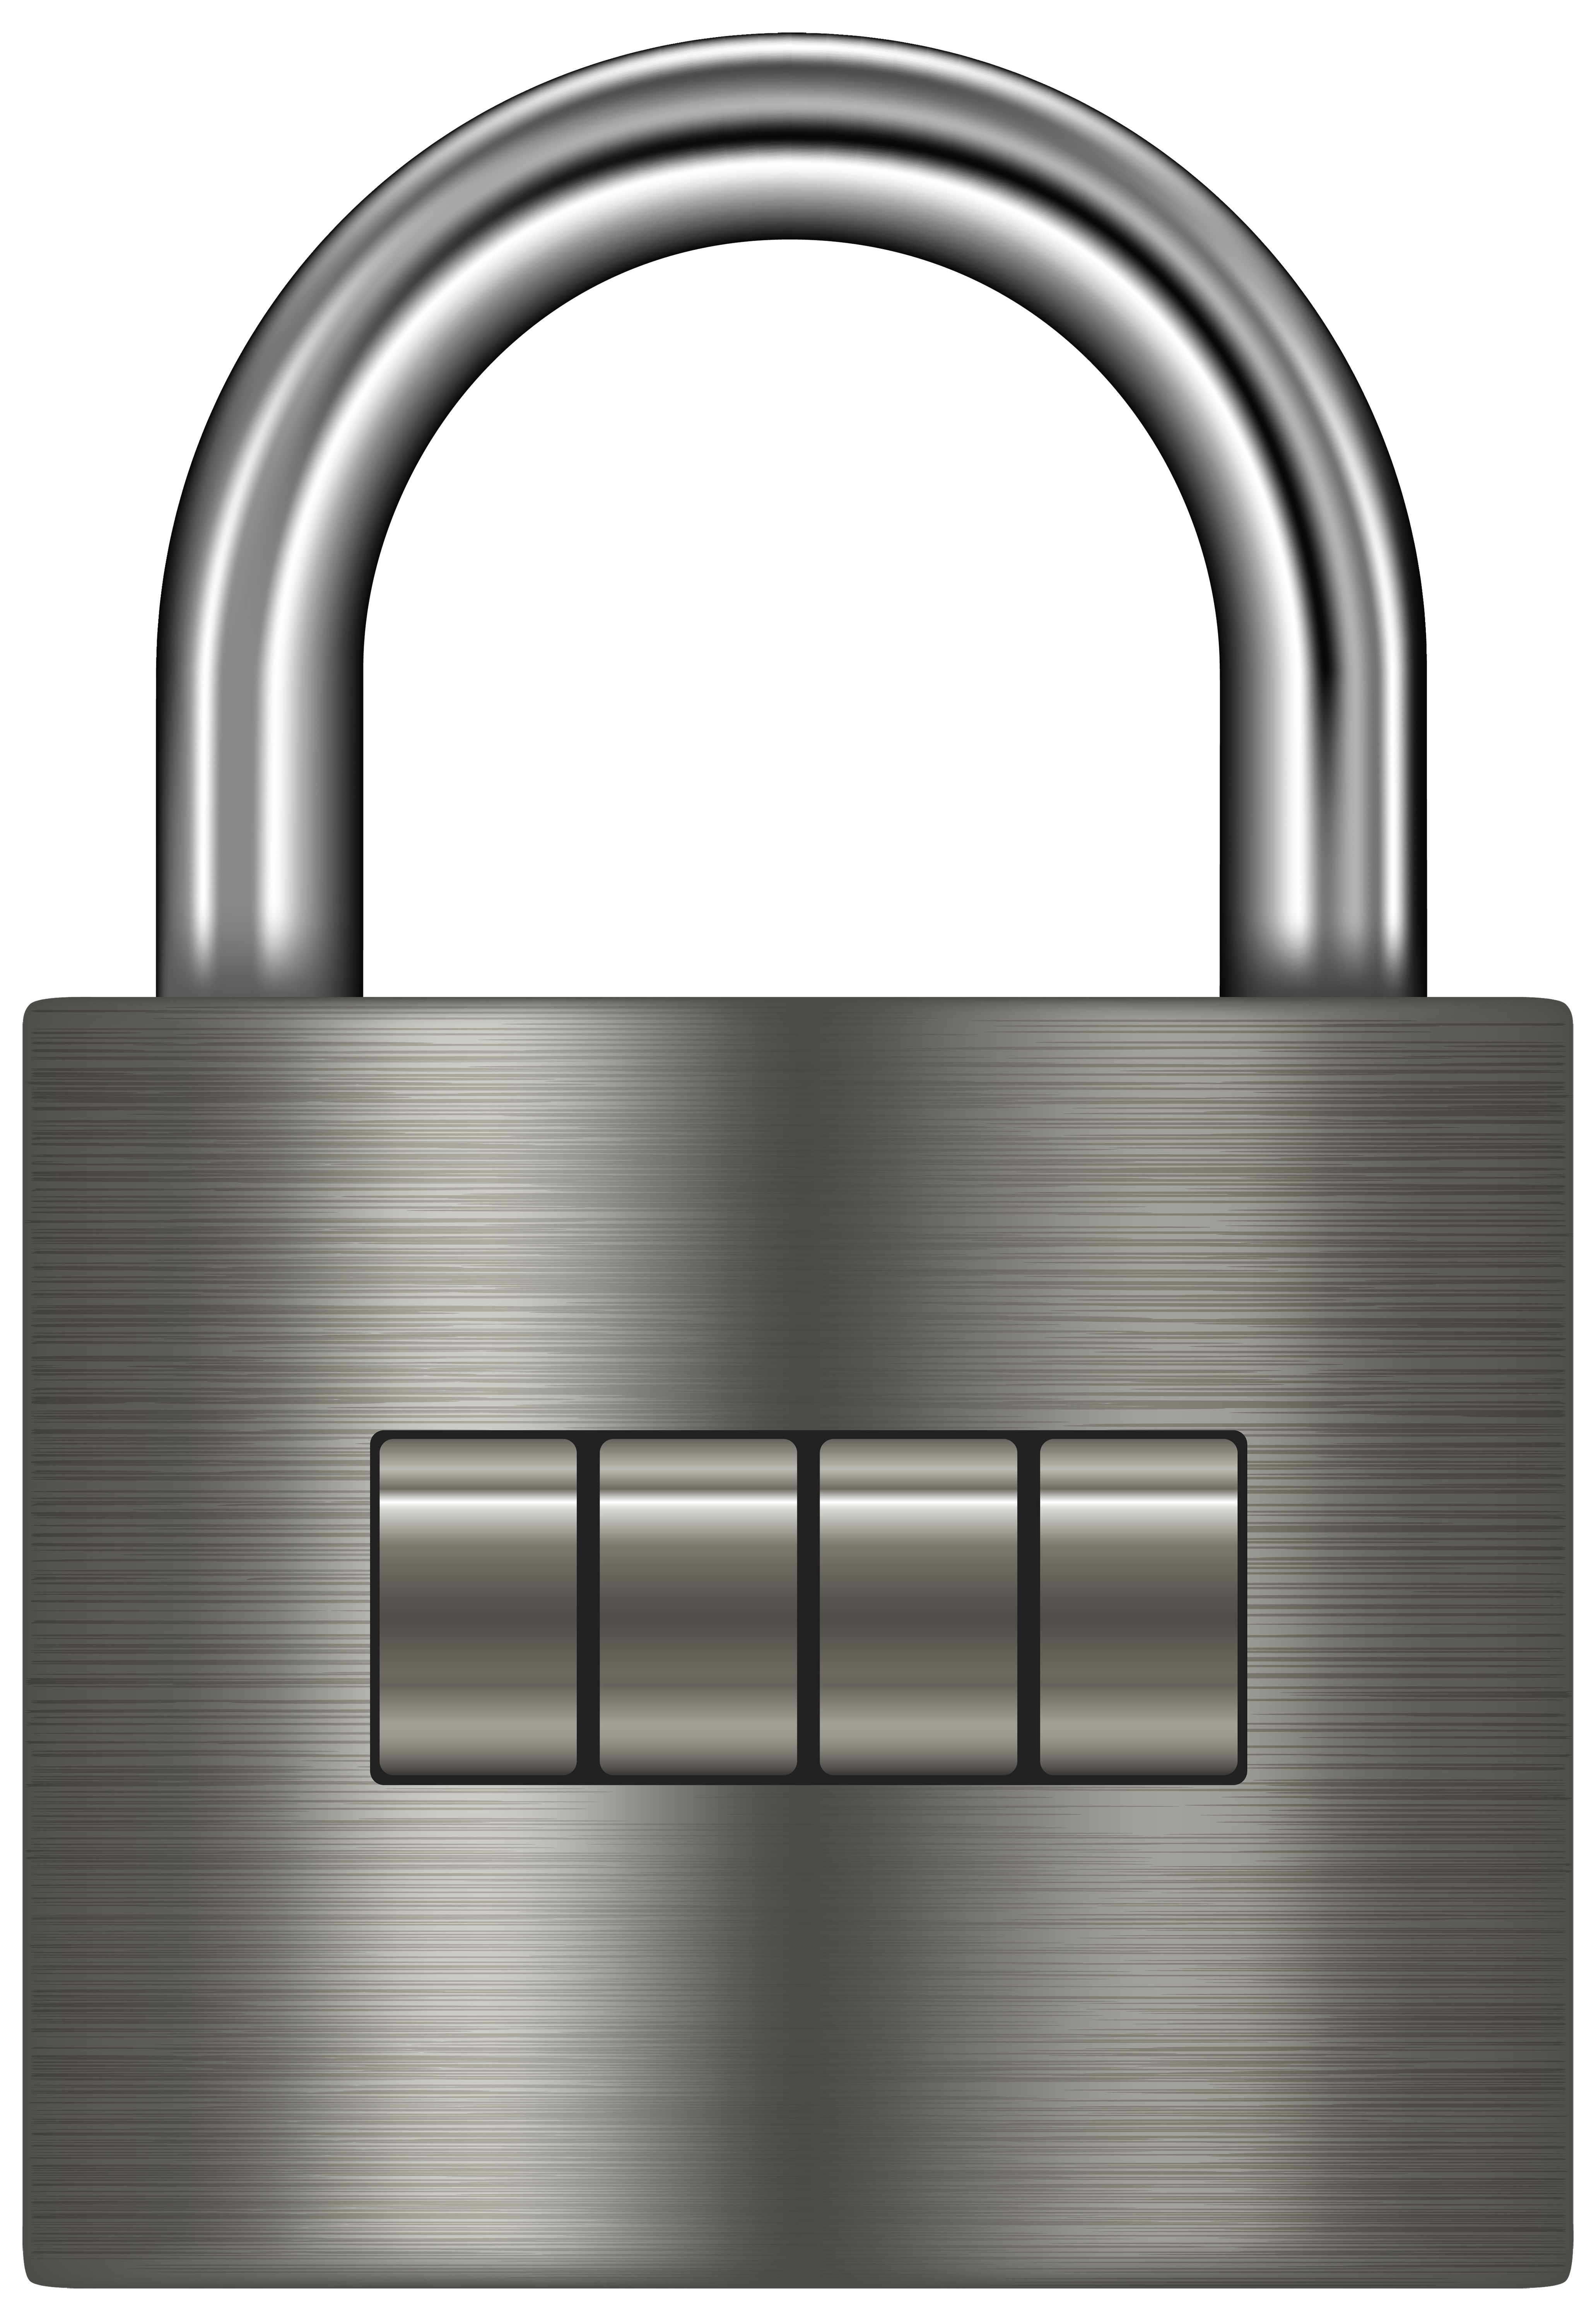 png royalty free download Silver png clip art. Padlock clipart